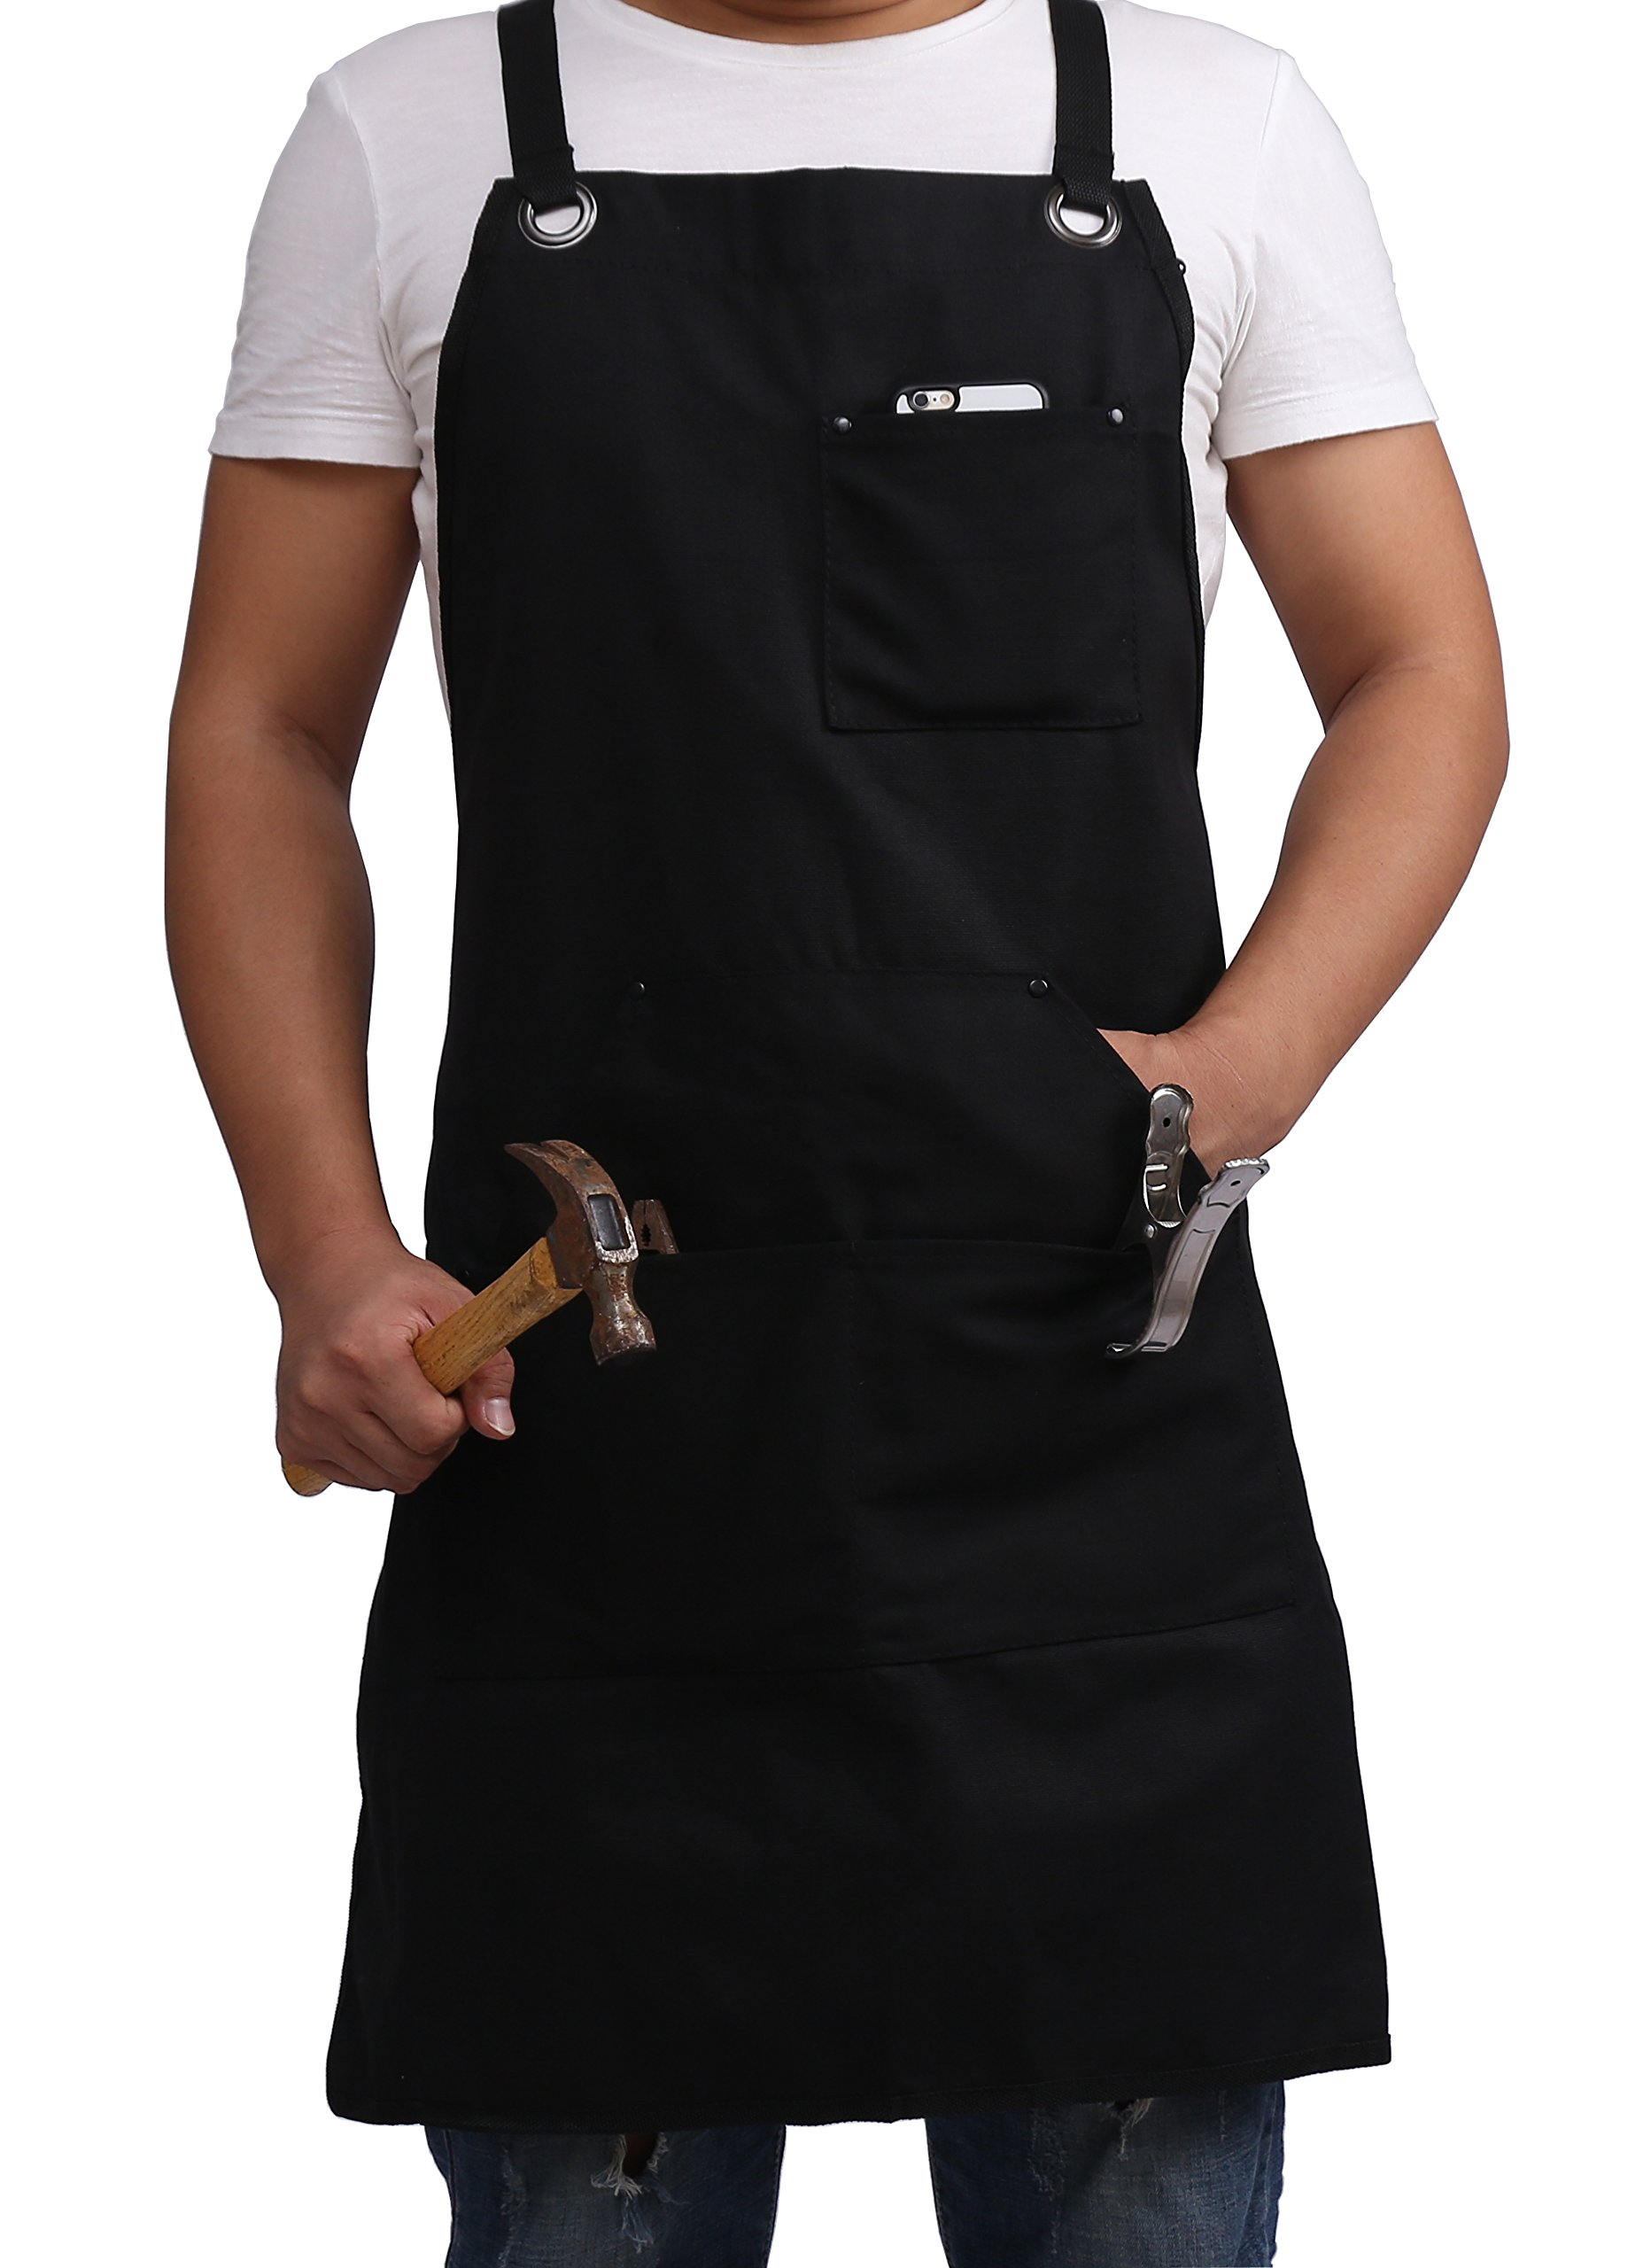 Black apron work Heavy Duty Waxed Canvas Work Apron, Heavy Duty Waxed Work Tool Apron Utility Apron with Pockets, work aprons for women and Men(Black) by Yiwu Bode Electronic Co., Ltd